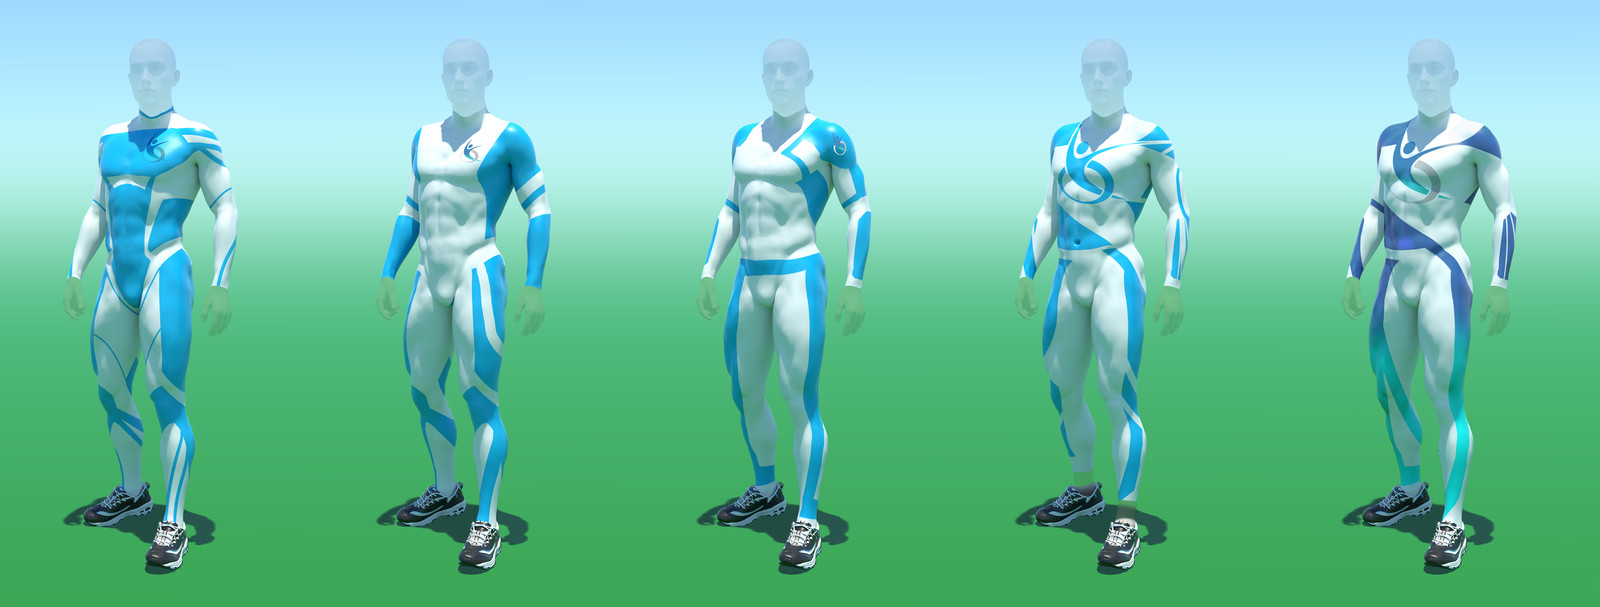 Future Fitness Uniform Design